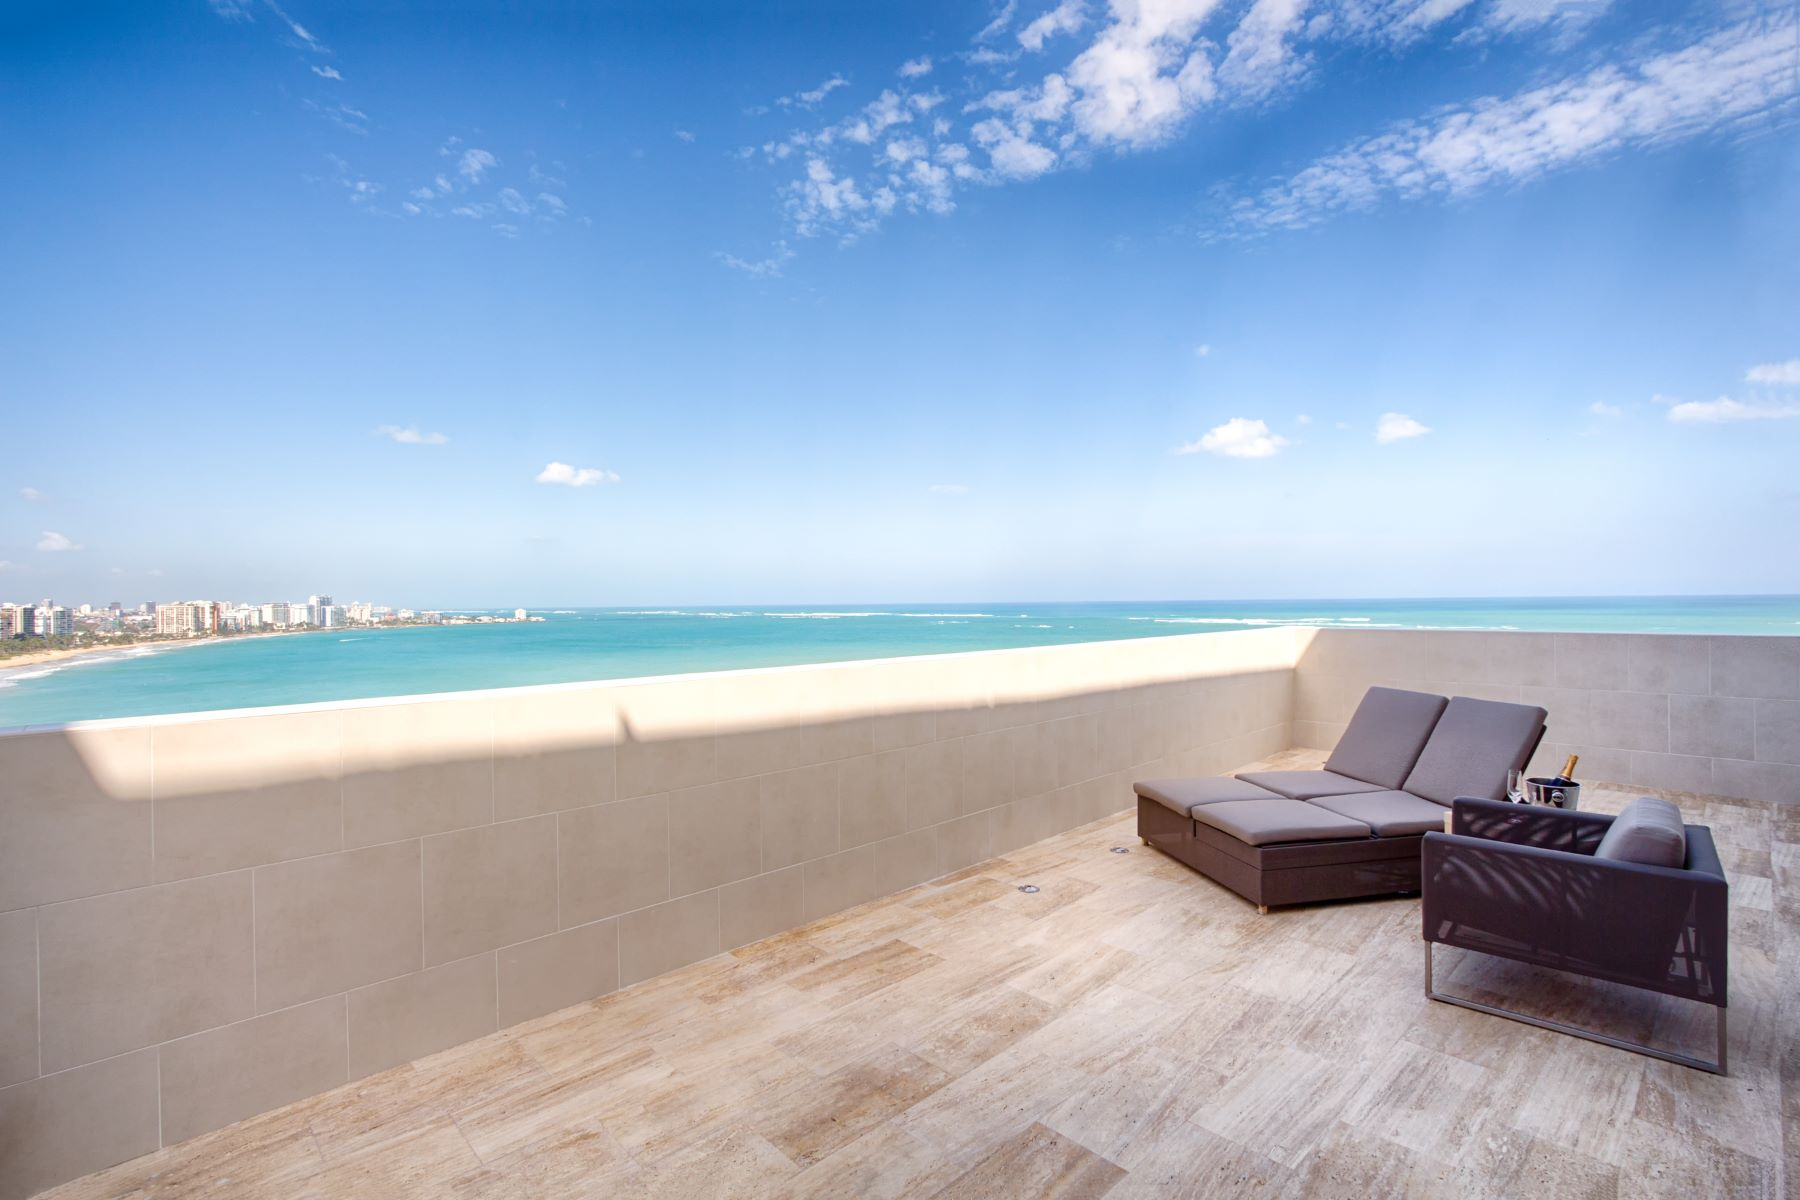 Tweezijdig voor Verkoop een t The Ultimate Beach Penthouse 6165 Isla Verde Ave. PH Carolina, Puerto Rico 00979 Puerto Rico